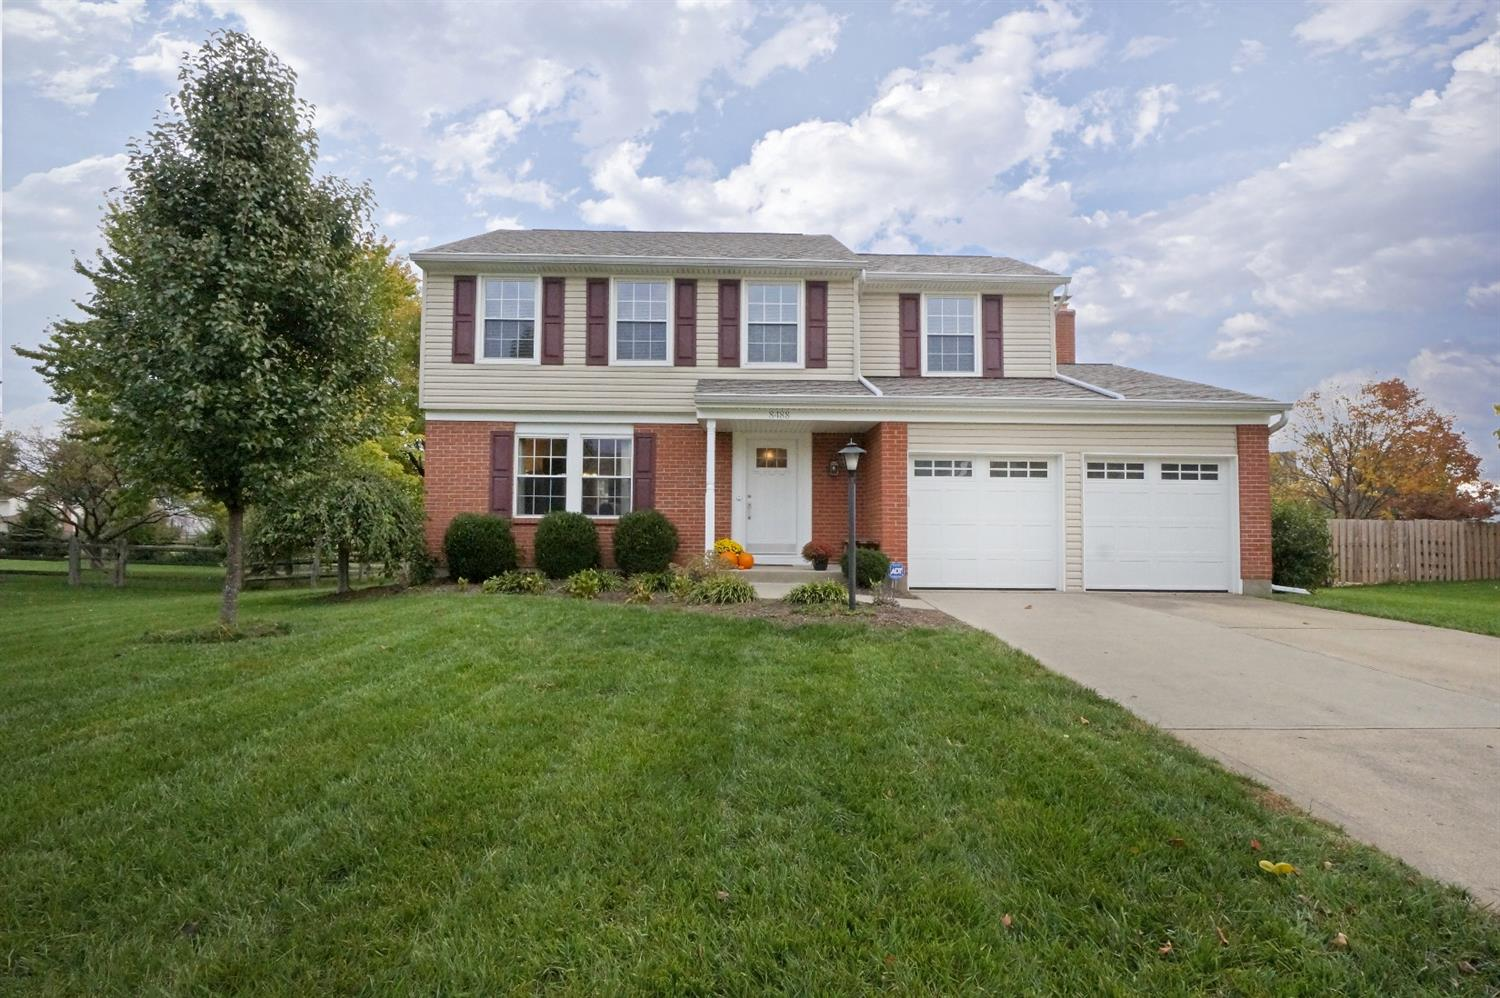 8488 Allendale Dr West Chester - East, OH